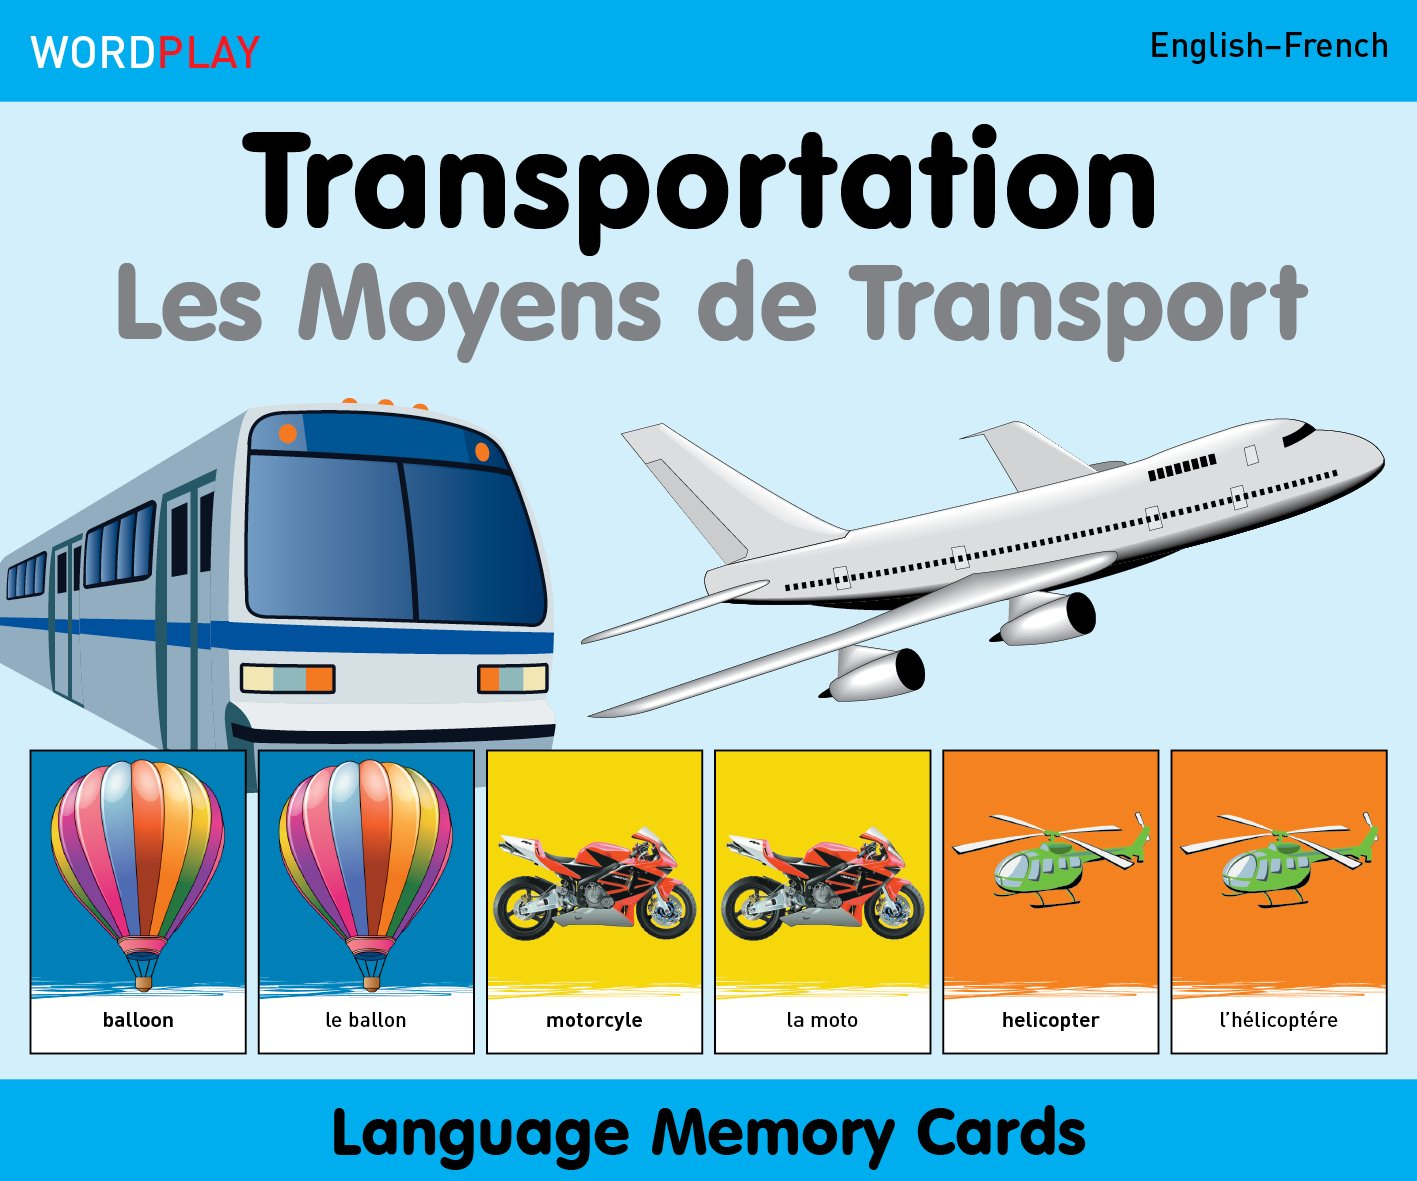 WordPlay Language Memory Cards–Transportation (English–French) (French and English Edition) by Milet Publishing